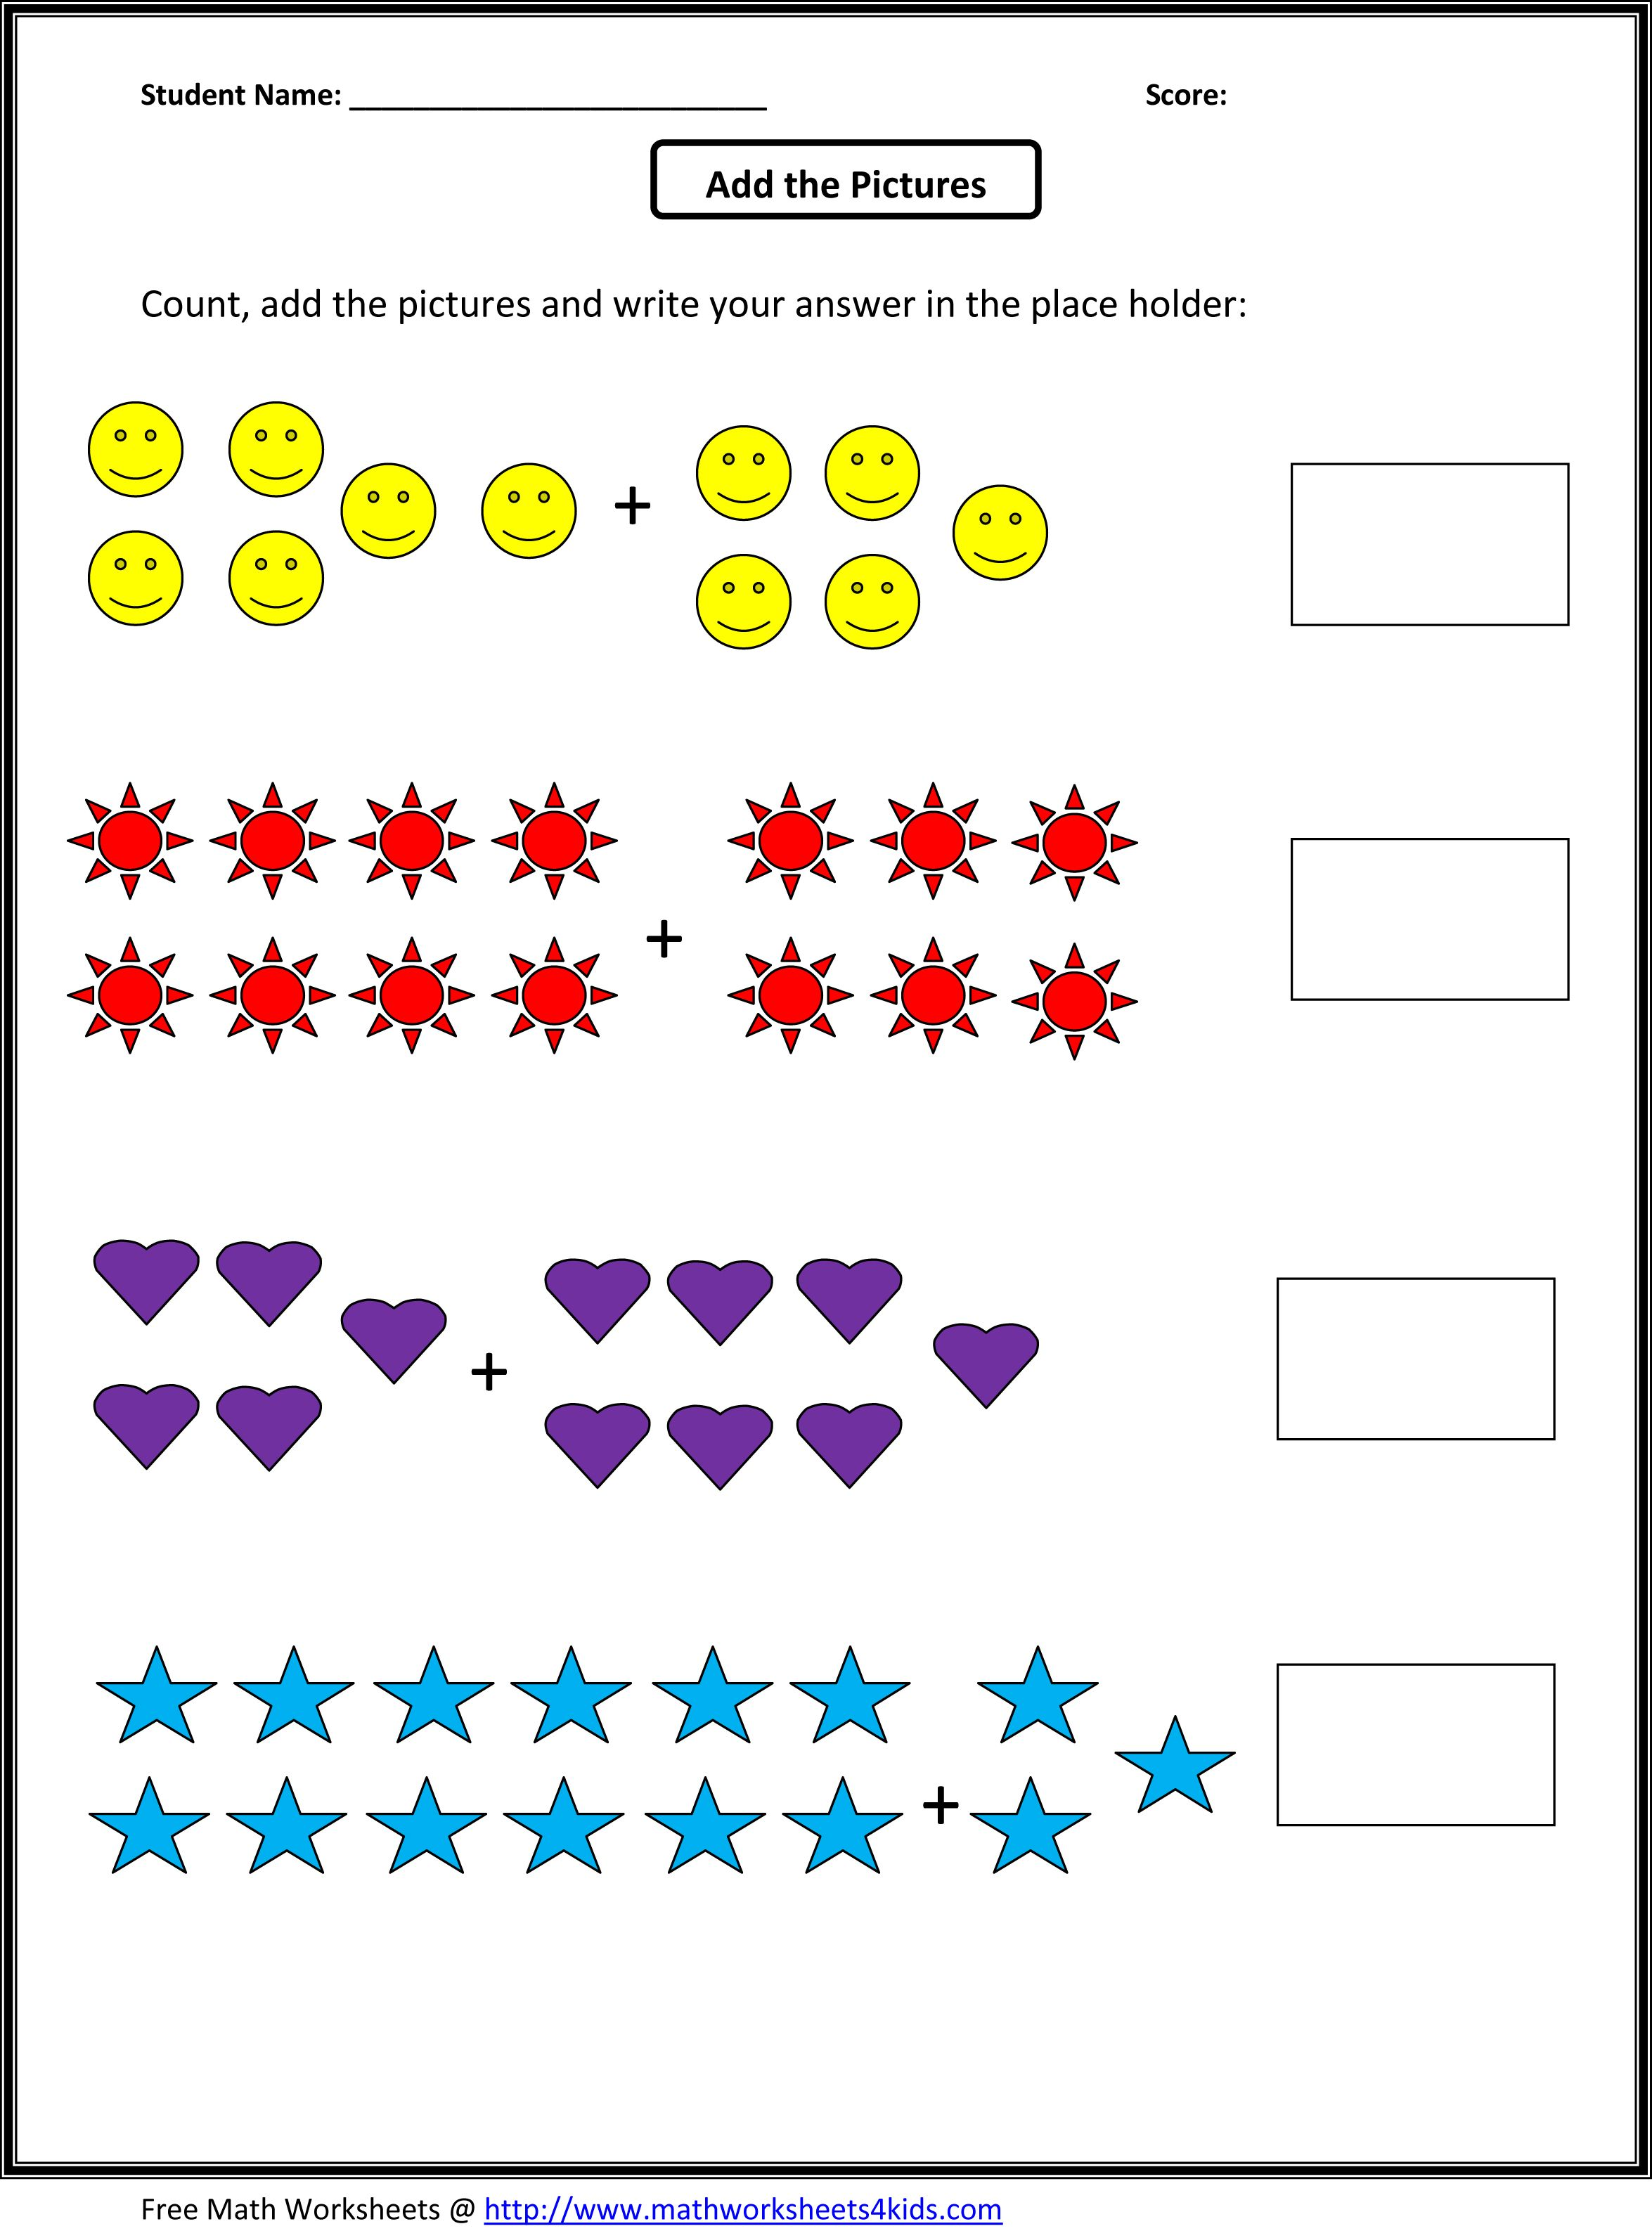 grade 1 addition math worksheets | First Grade Math Worksheets ...